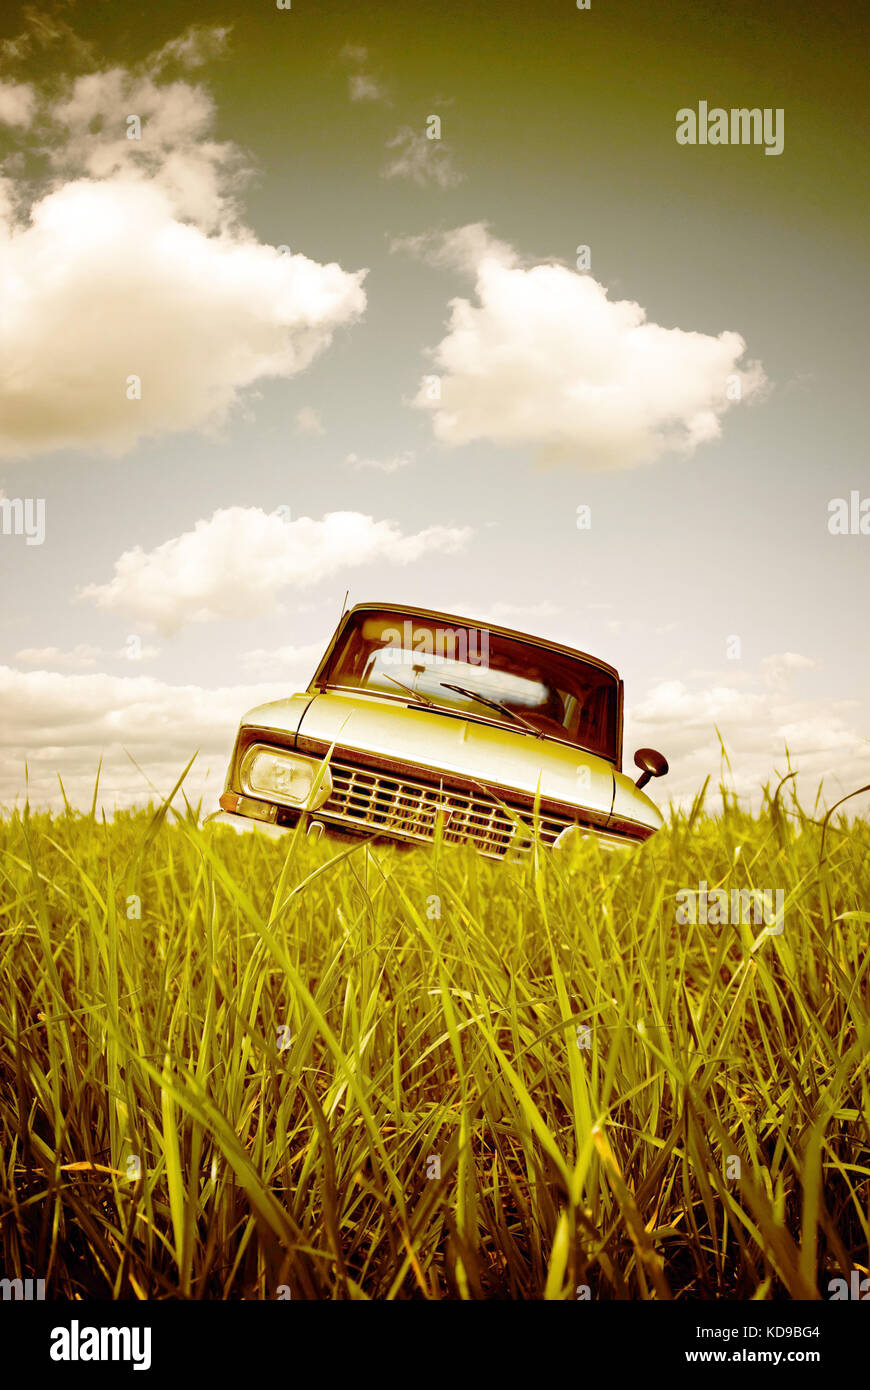 old car abandoned in a meadow - Stock Image